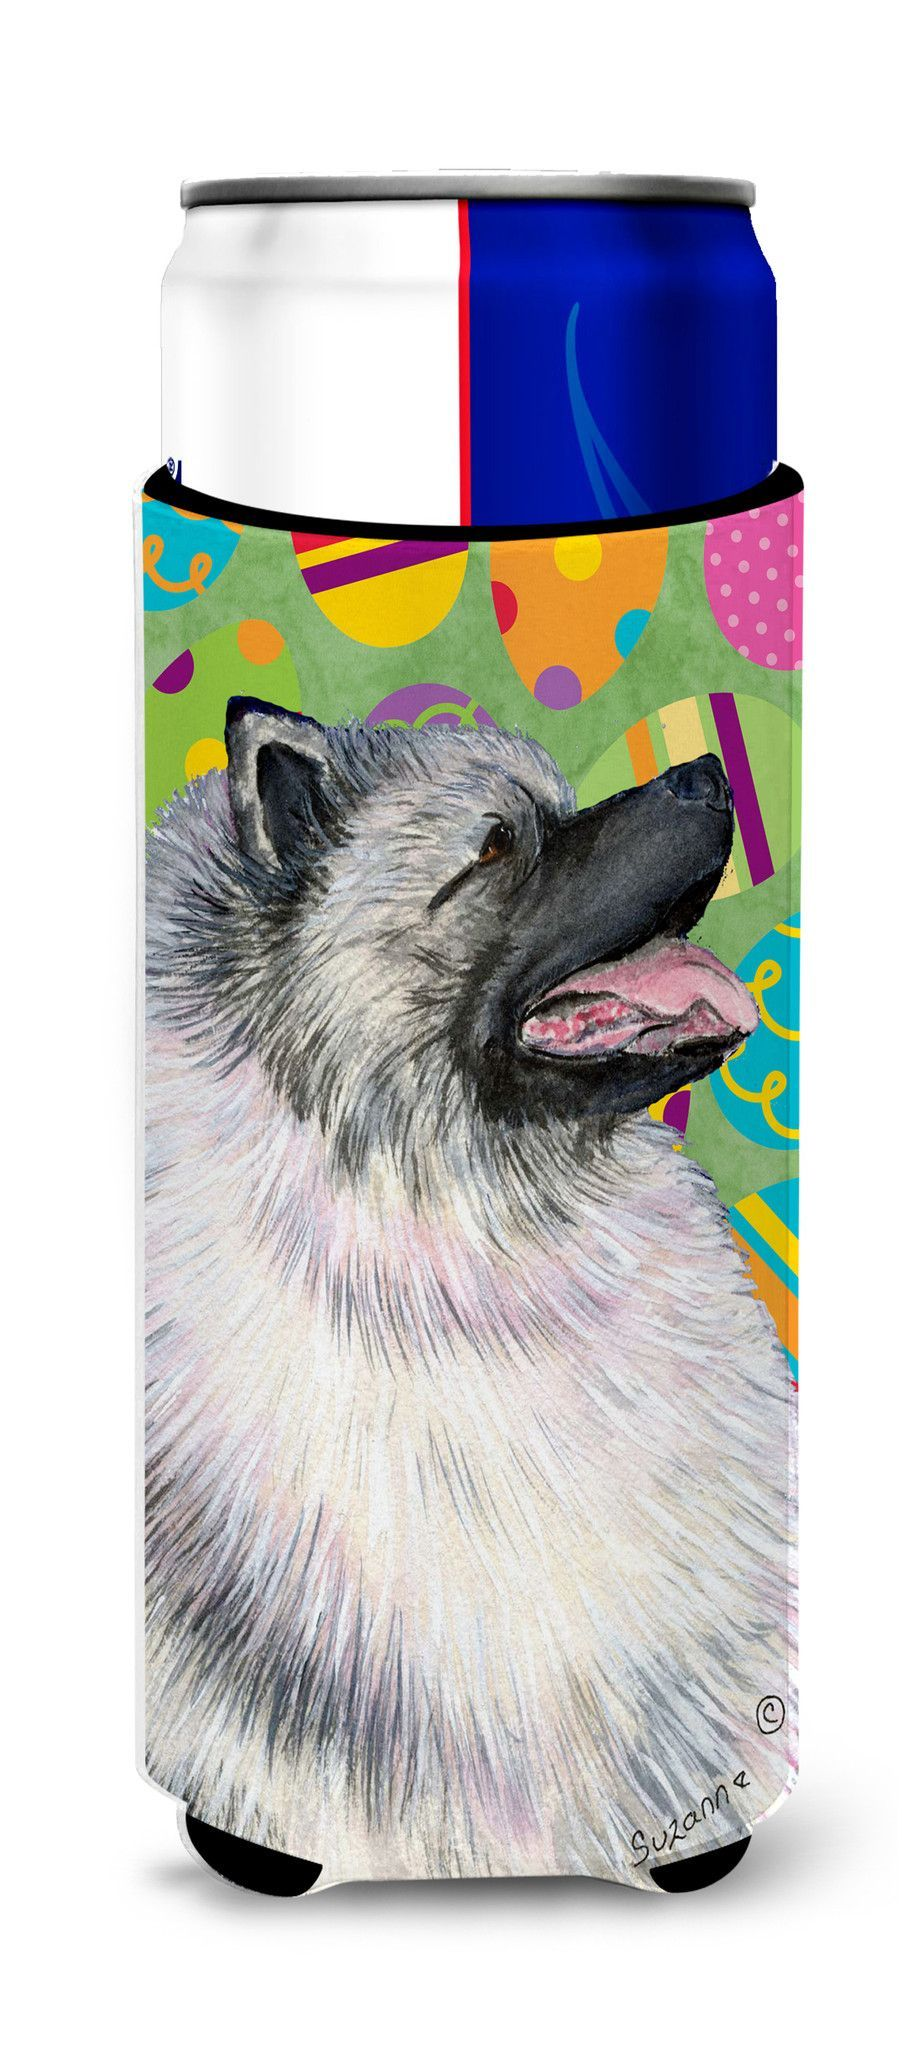 Keeshond Easter Eggtravaganza Ultra Beverage Insulators for slim cans SS4833MUK